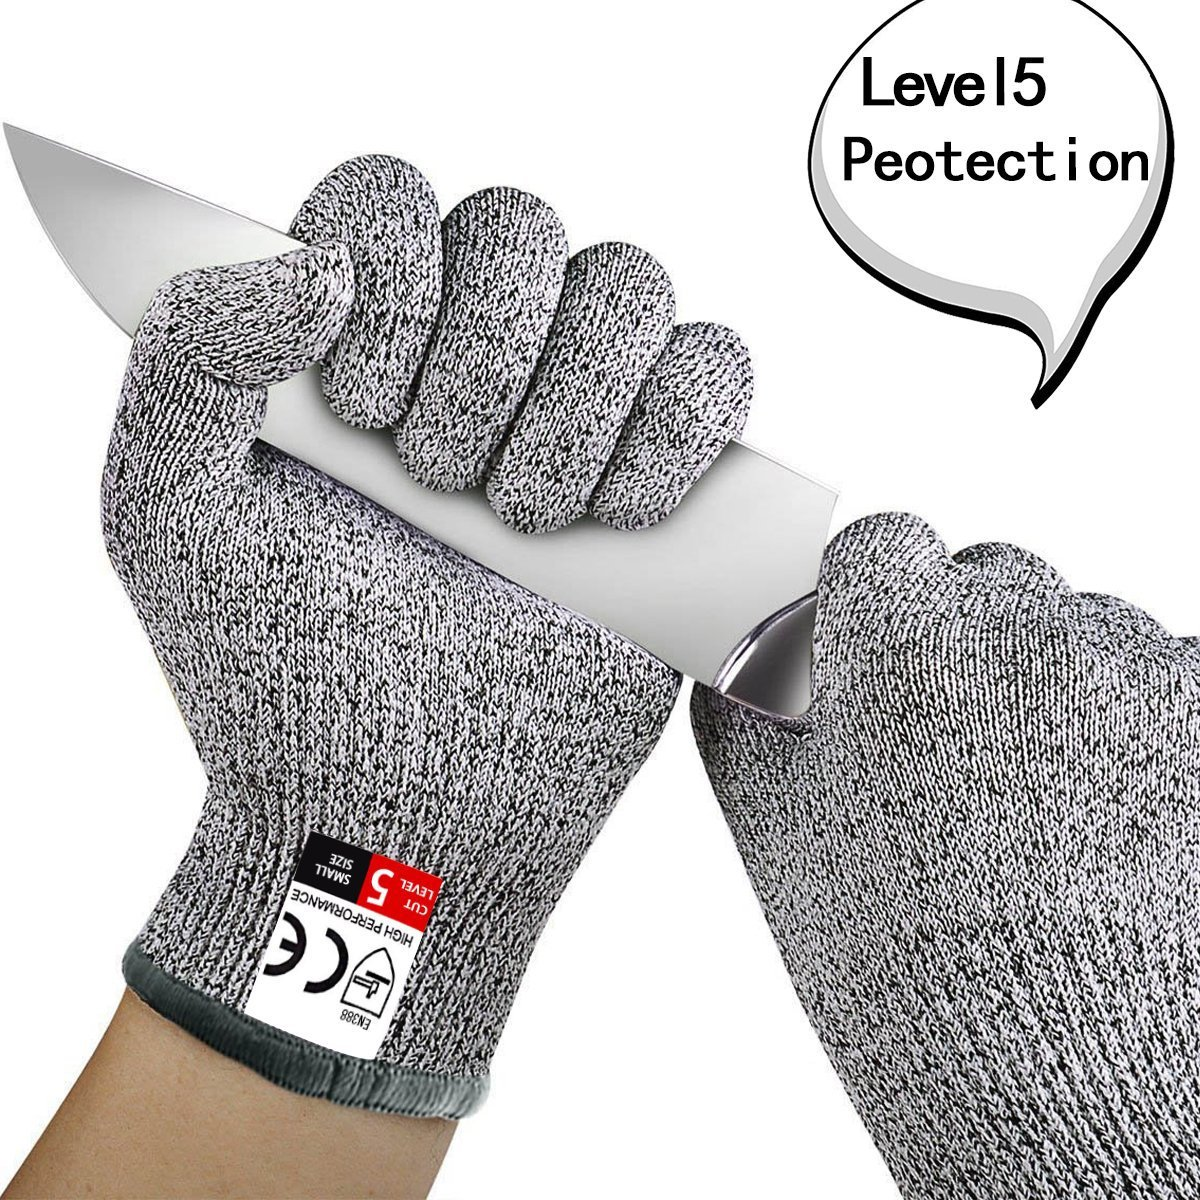 Level 5 Cut-resistant Gloves High-strength Polyethylene HPPE Knit Kitchen Cut-proof Gloves Woodworking Slaughter Dipped Gloves